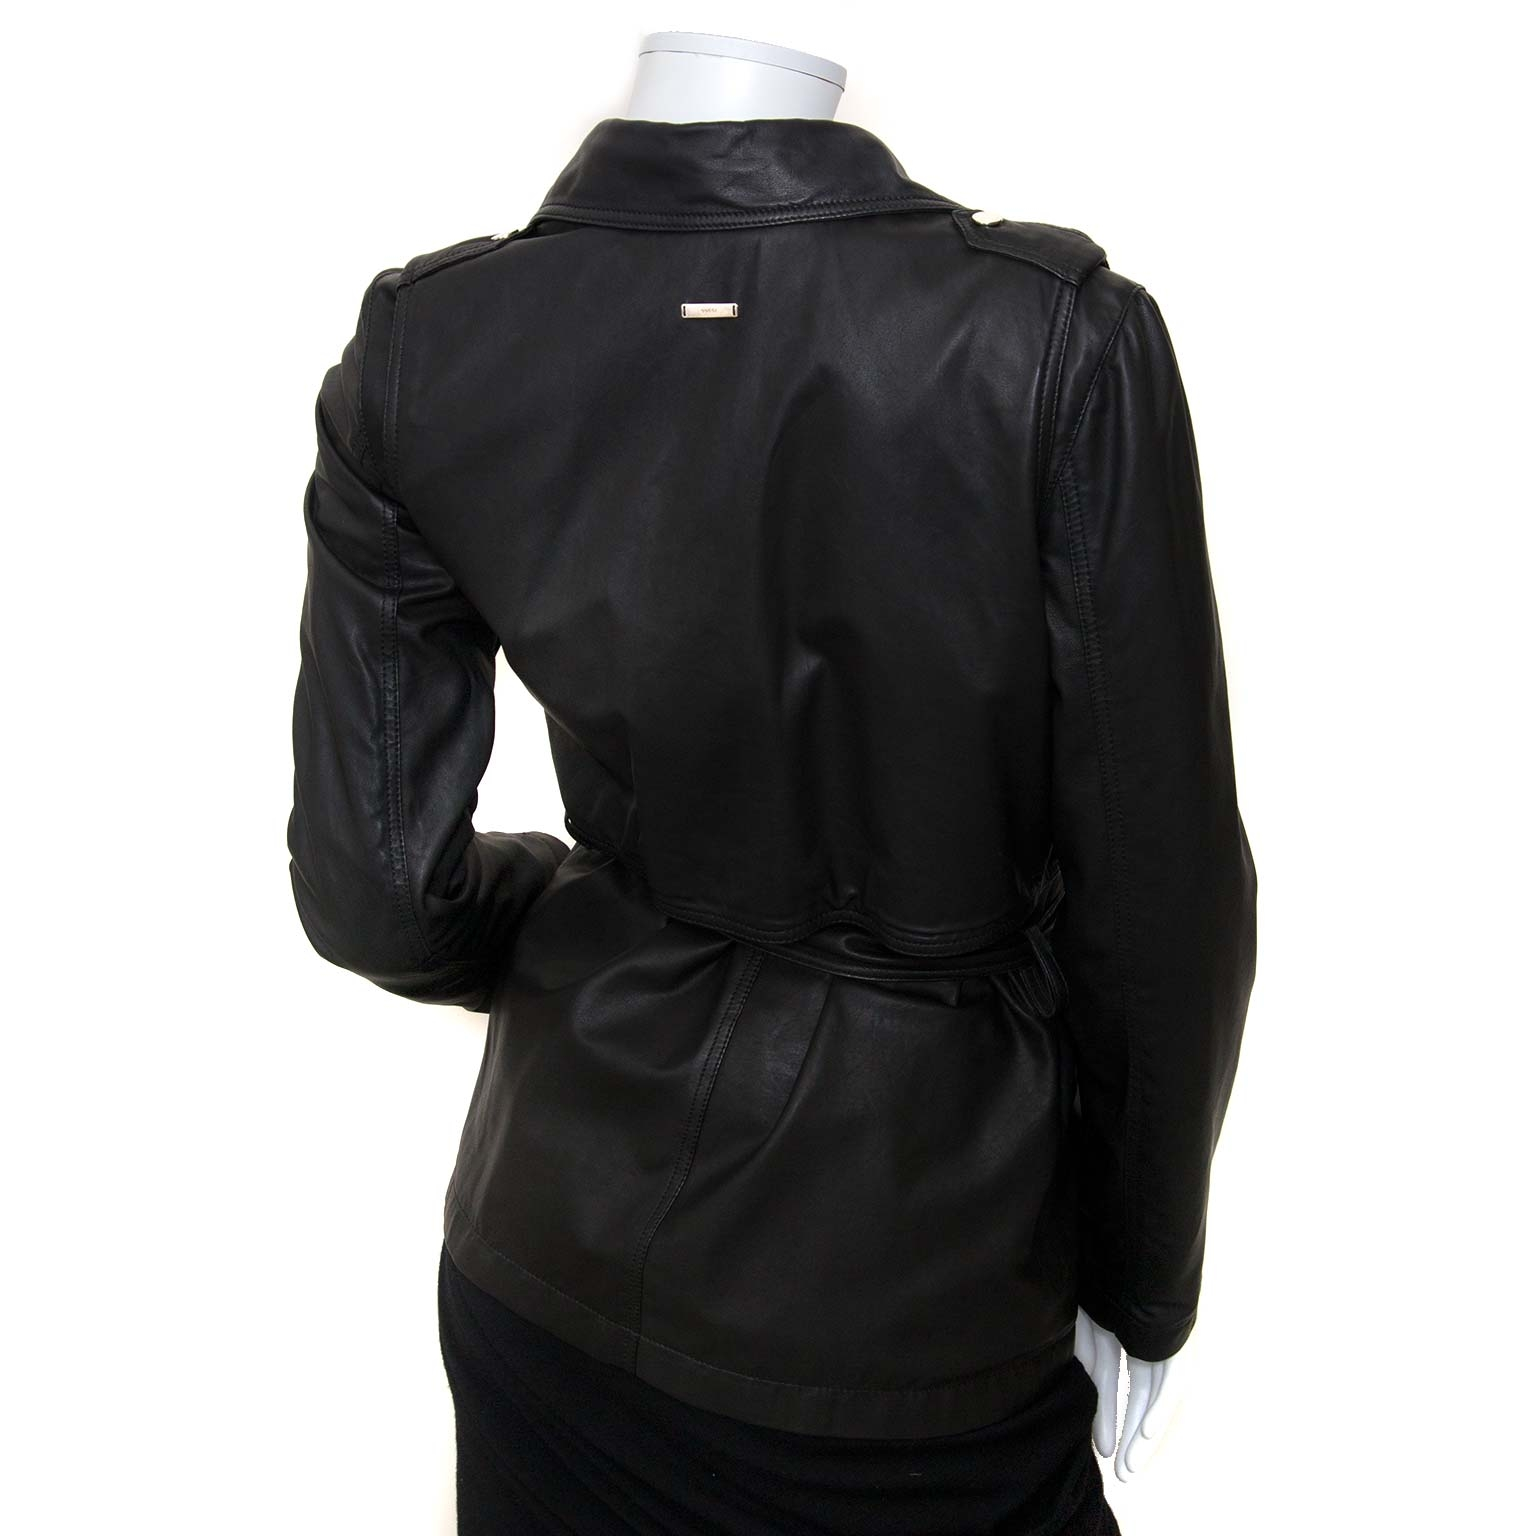 gucci black leather jacket now for sale at labellov vintage fashion webshop belgium